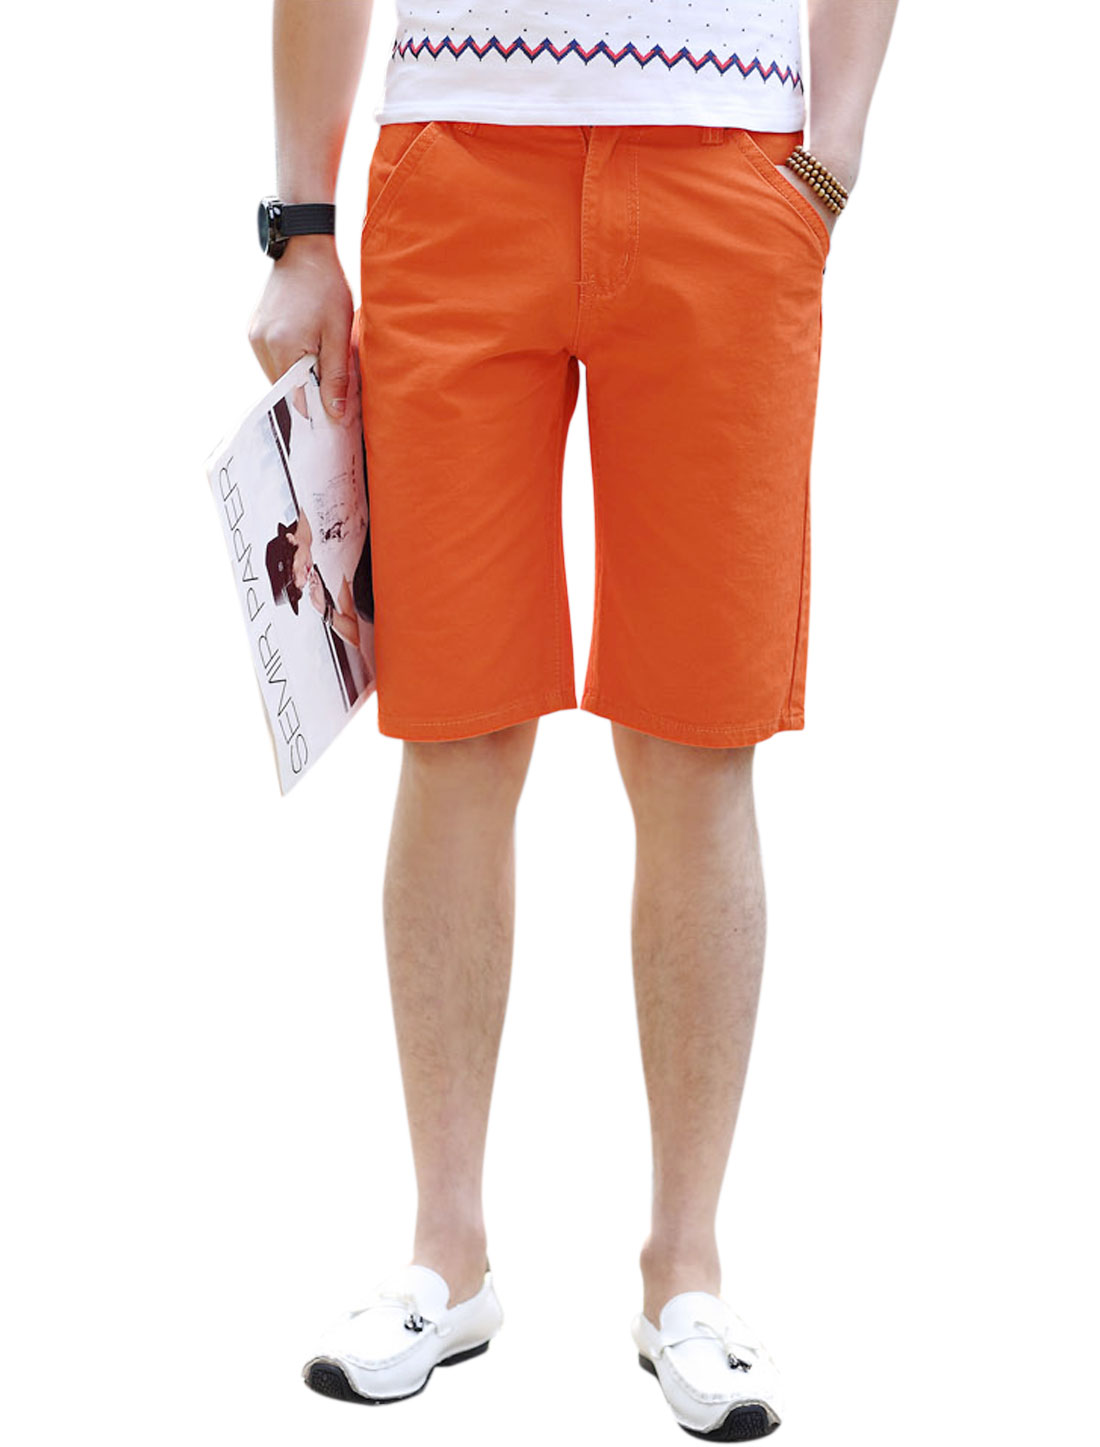 Men Zip Fly Straight Pockets Casual Summer Short Pants Orange W34